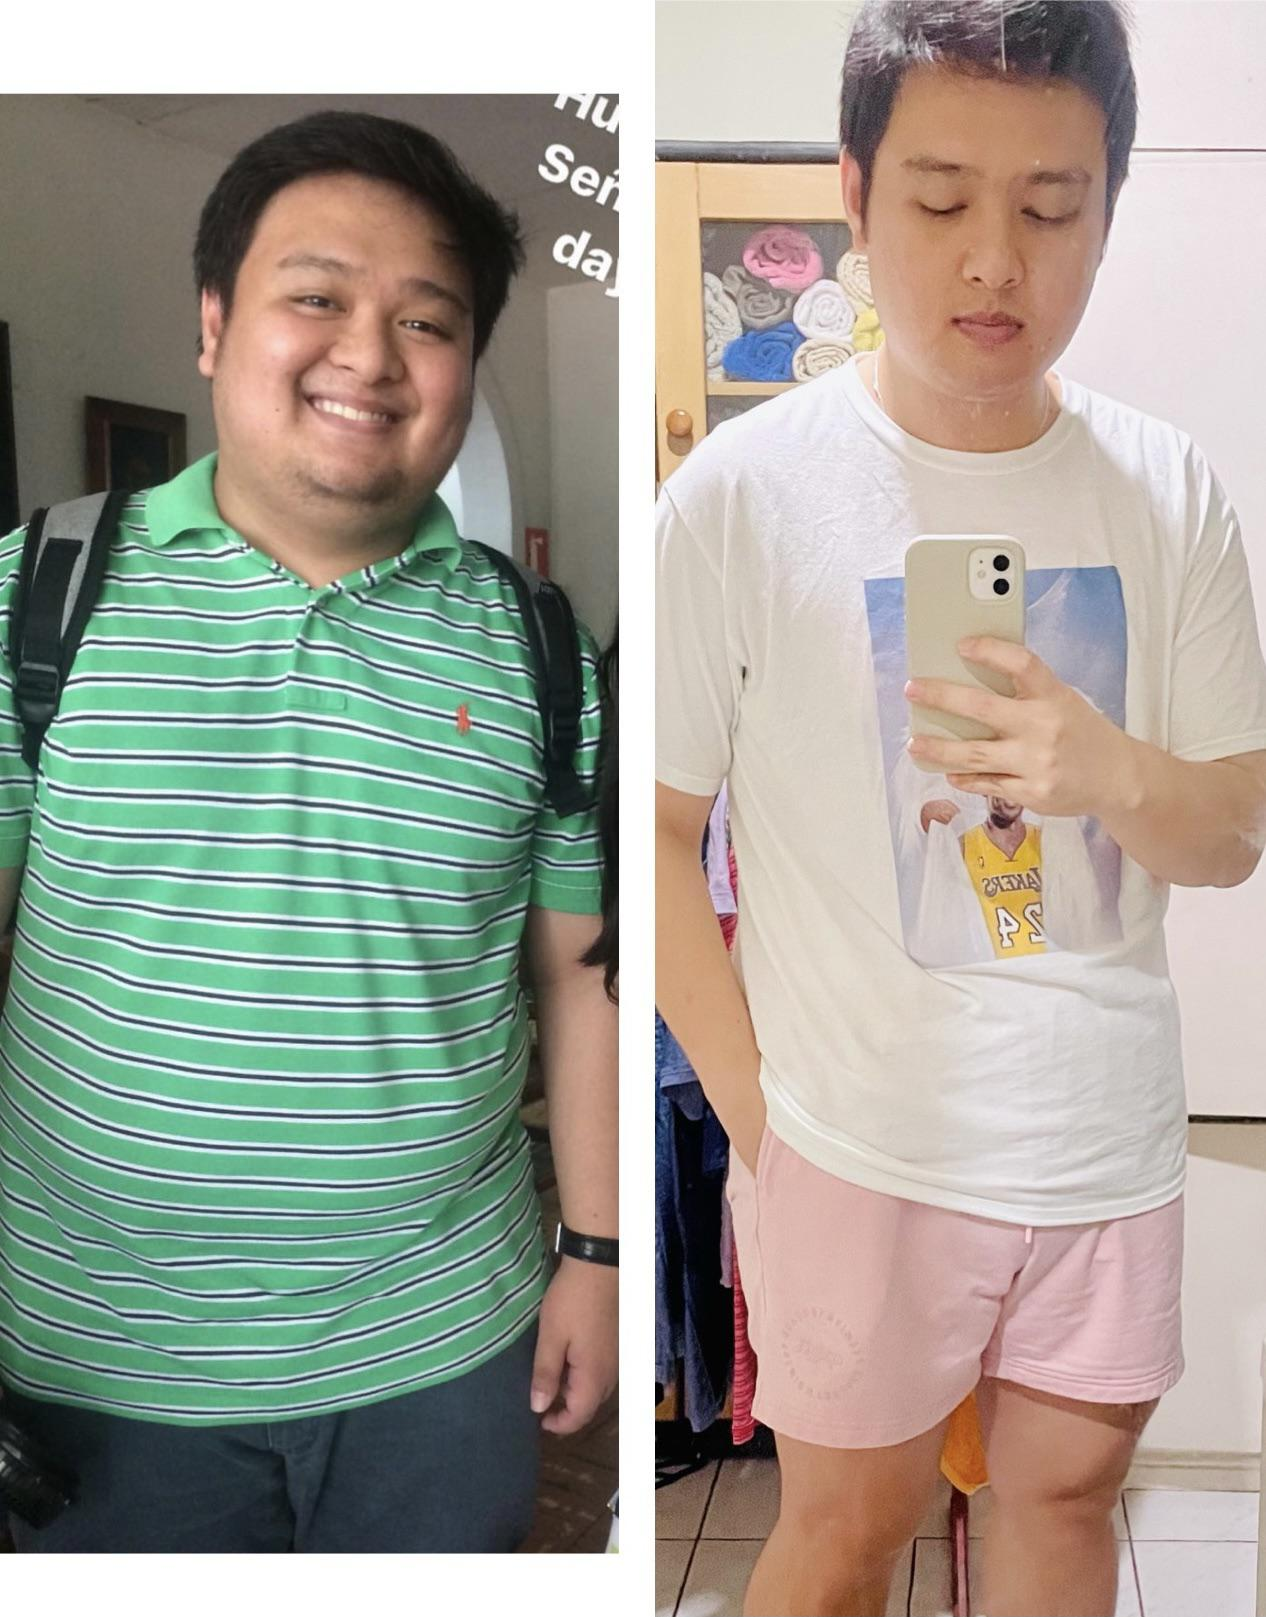 5 foot 5 Male 50 lbs Weight Loss Before and After 225 lbs to 175 lbs